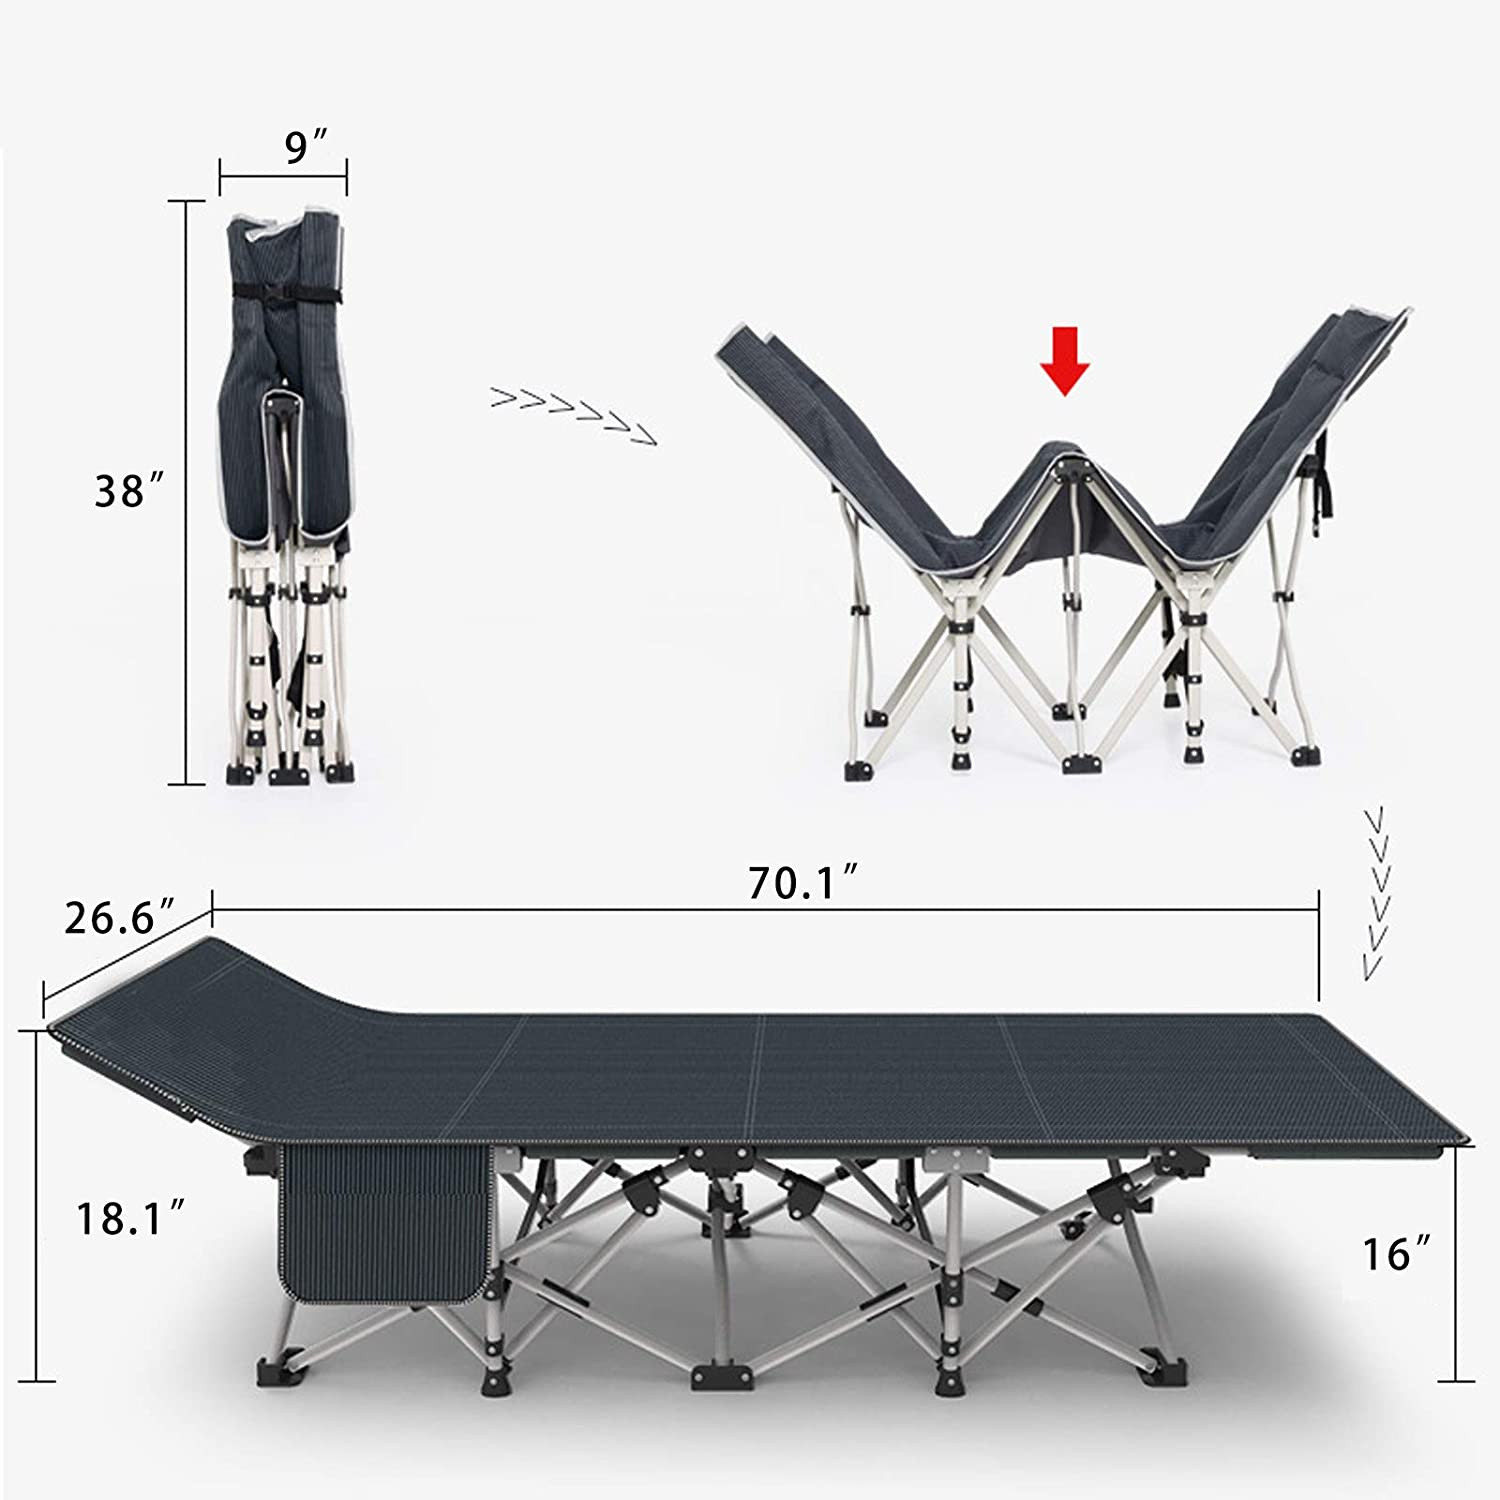 JYXYT Folding Camping Cot Barbecue Backpack Beach Indoor//Outdoor Use Office Hiking Used for Camping Portable Camping Cots for Adults